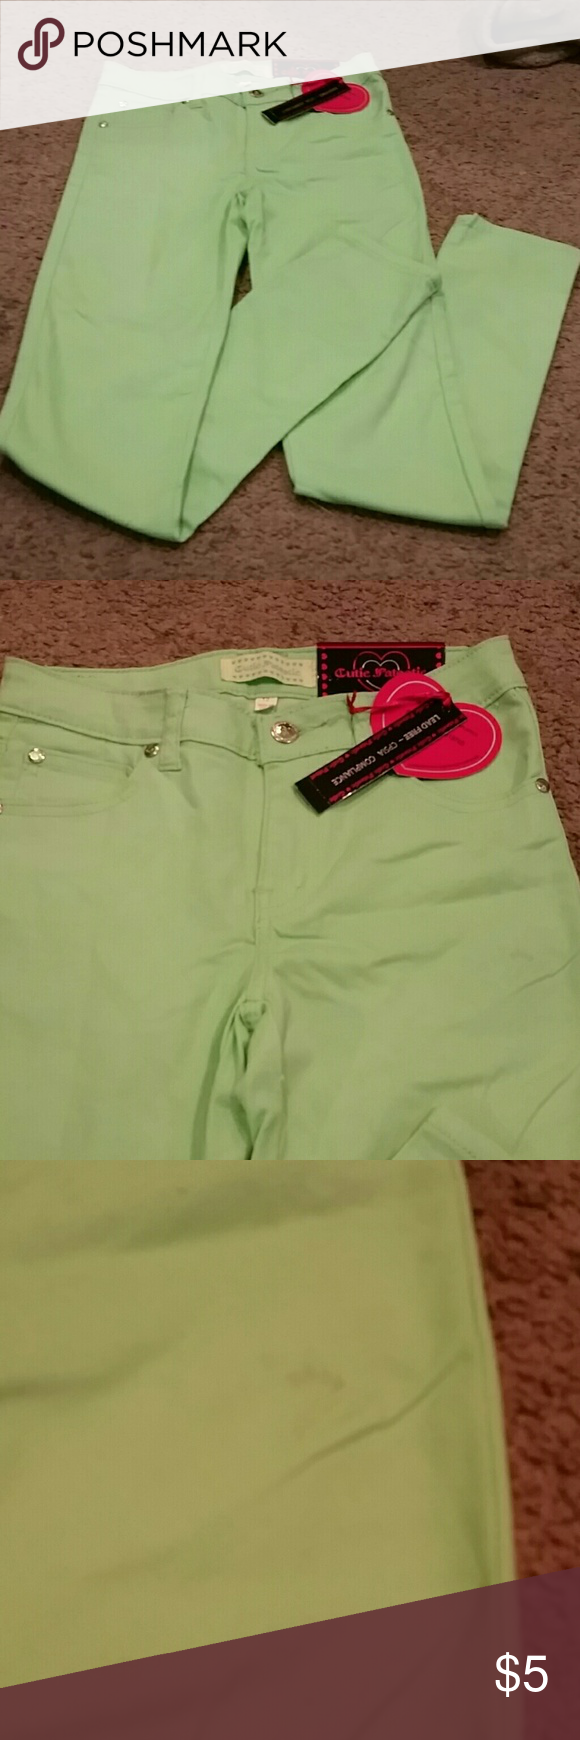 Girls pants Green pants for girls. NWT, but there is a small stain on left thigh that may wash out. cutie patootie Bottoms Jeans